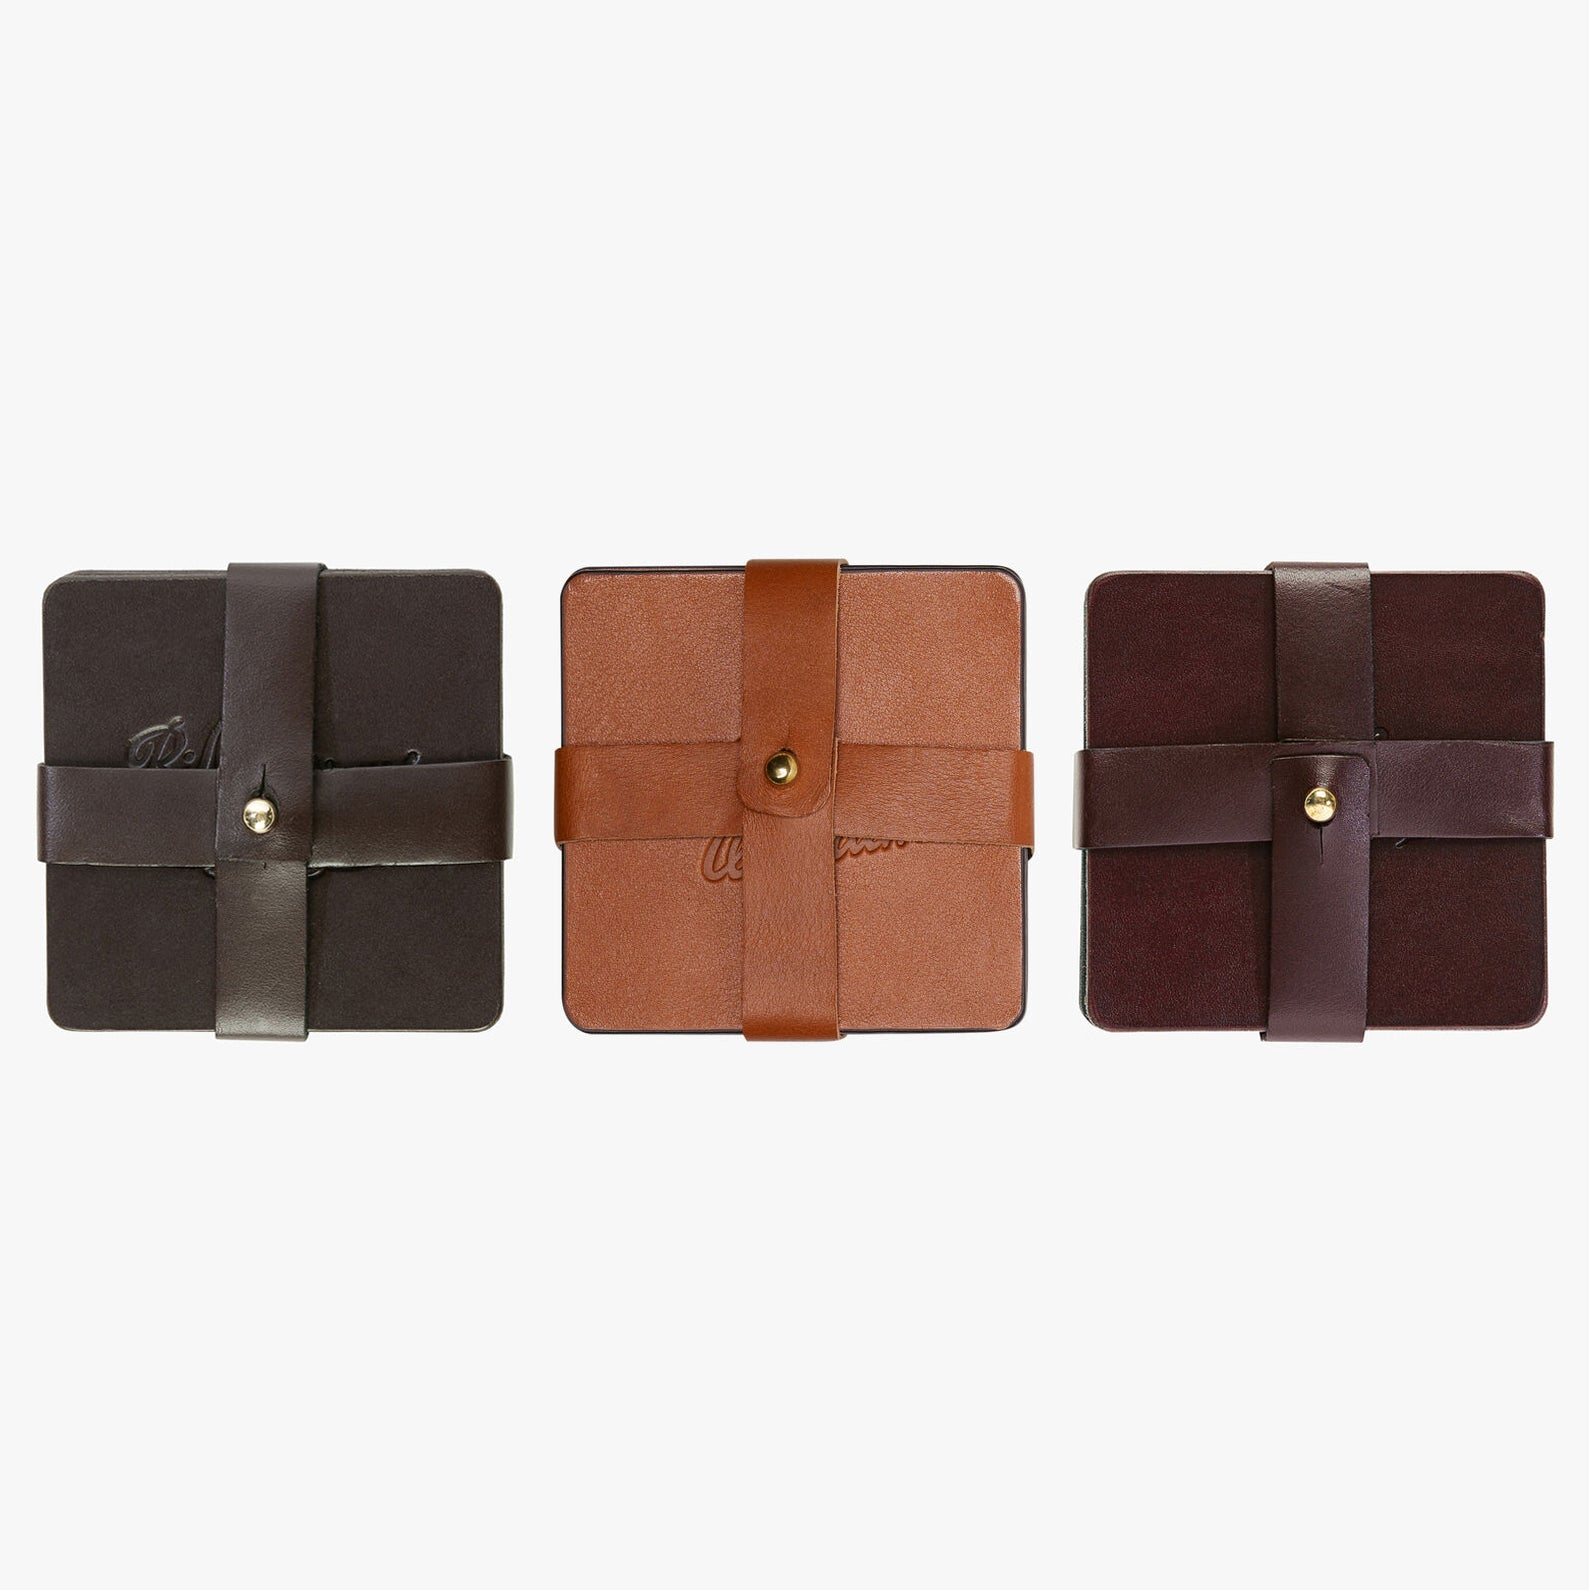 RM Williams 6 Pack Coasters